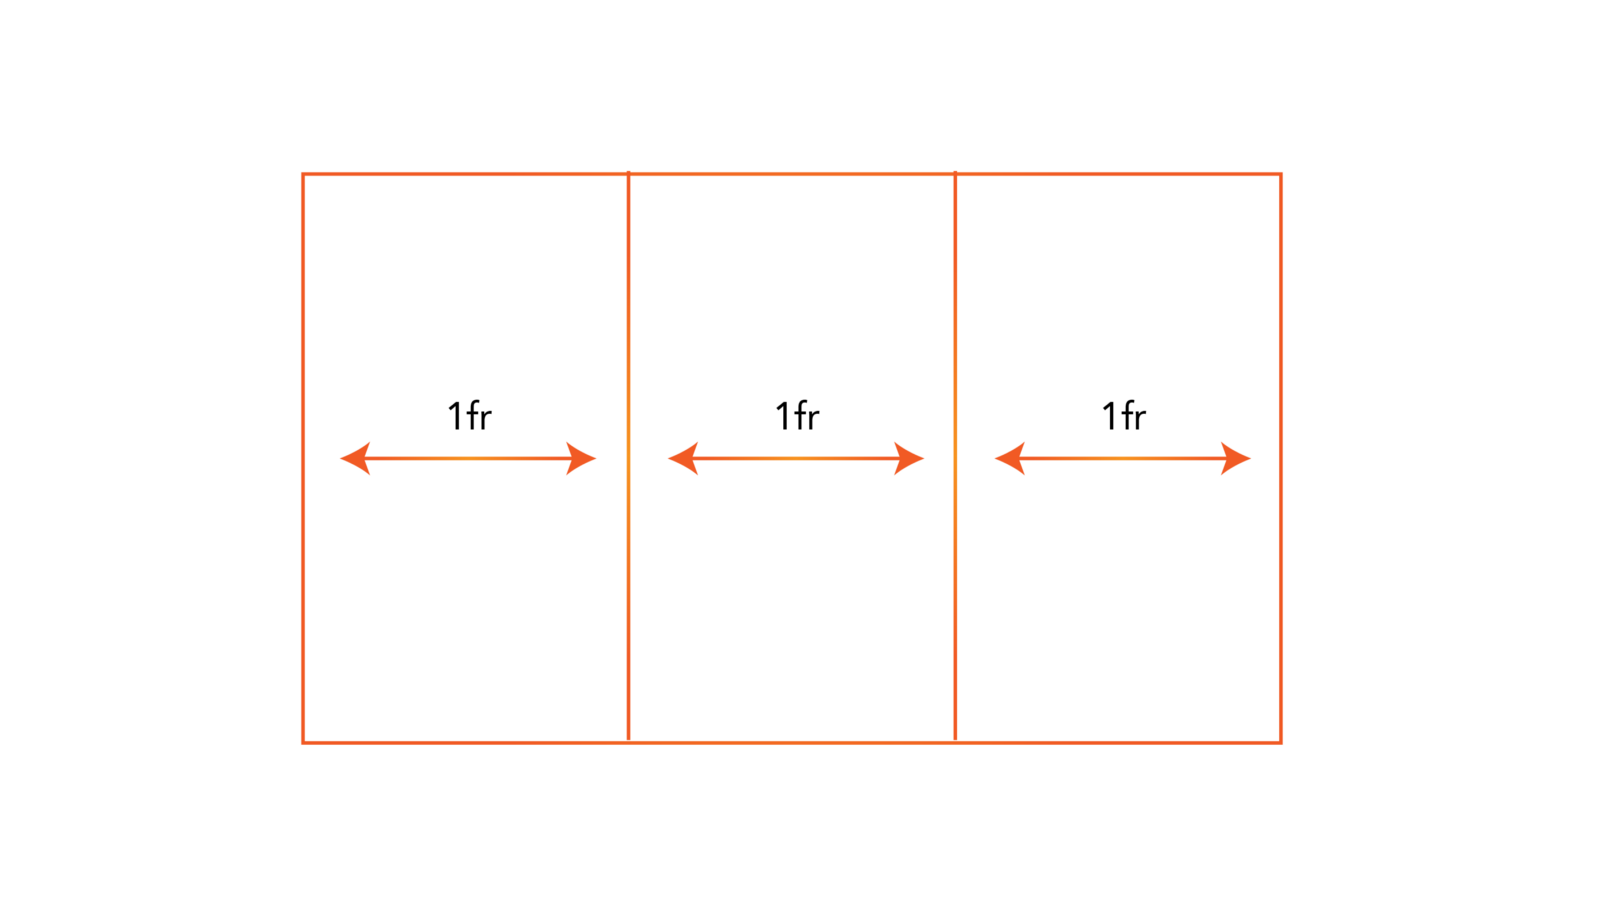 How To Efficiently Master The Css Grid In A Jiffy And Create Block Diagrams Of Space Similar One Below If For Some Reason You Add More Elements No Worries Fr Unit Will Equally Redistribute